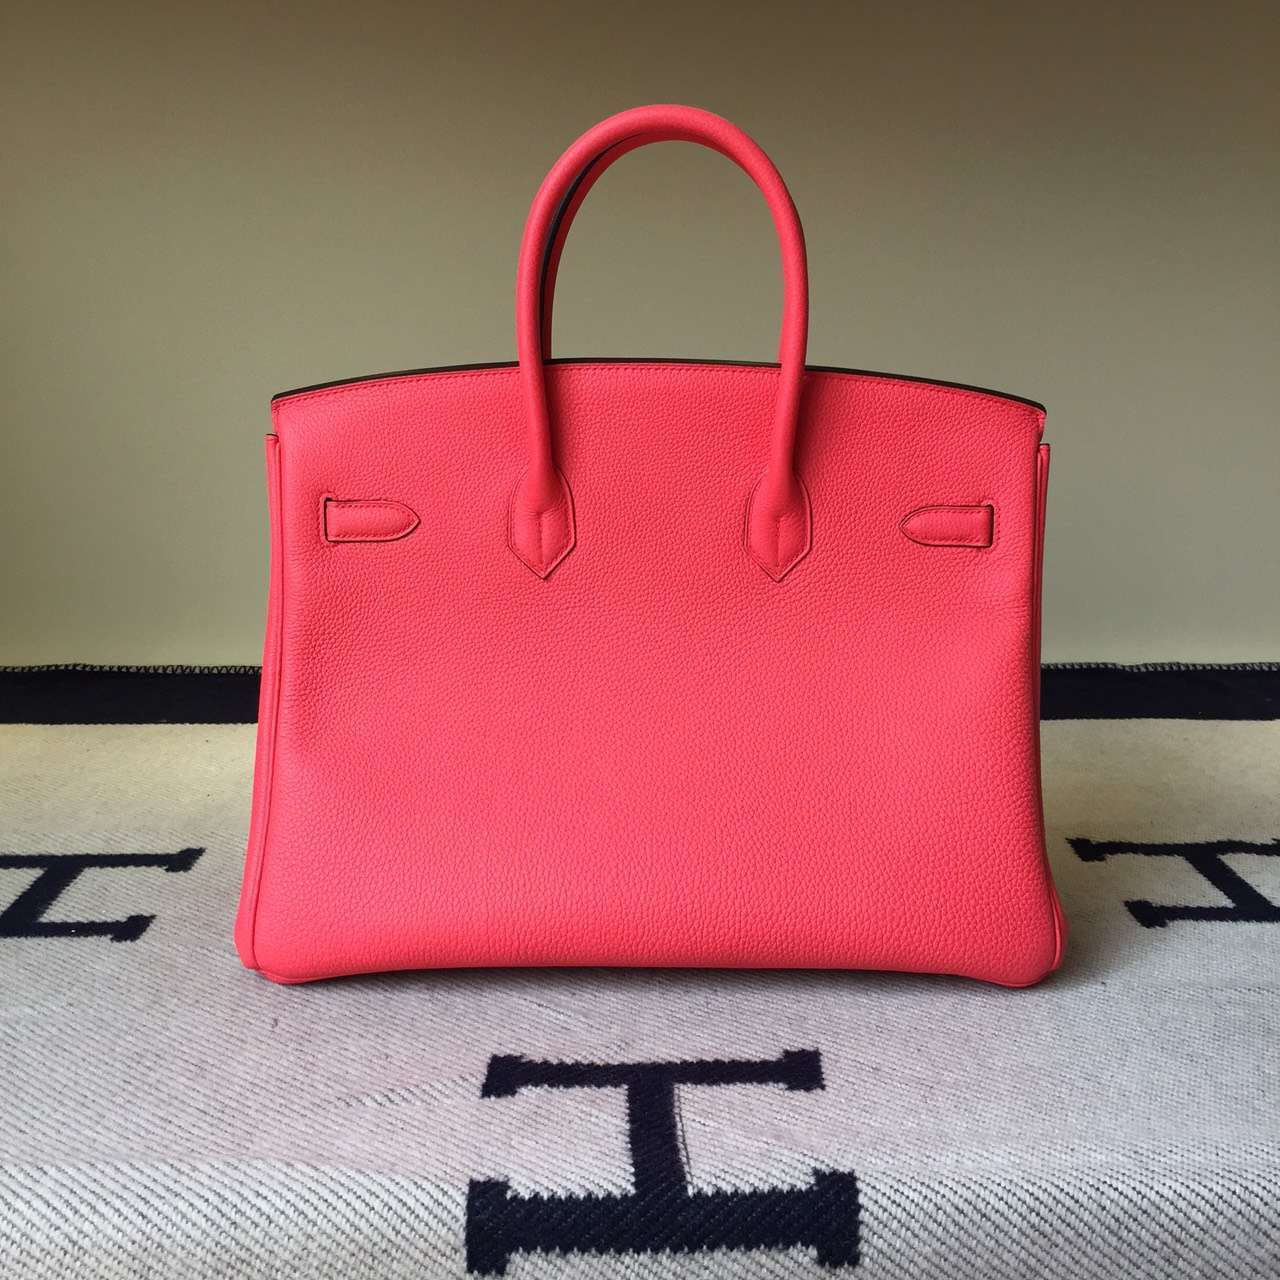 Hot Sale Hermes Togo Leather Birkin 30/35cm in T5 Peach Pink